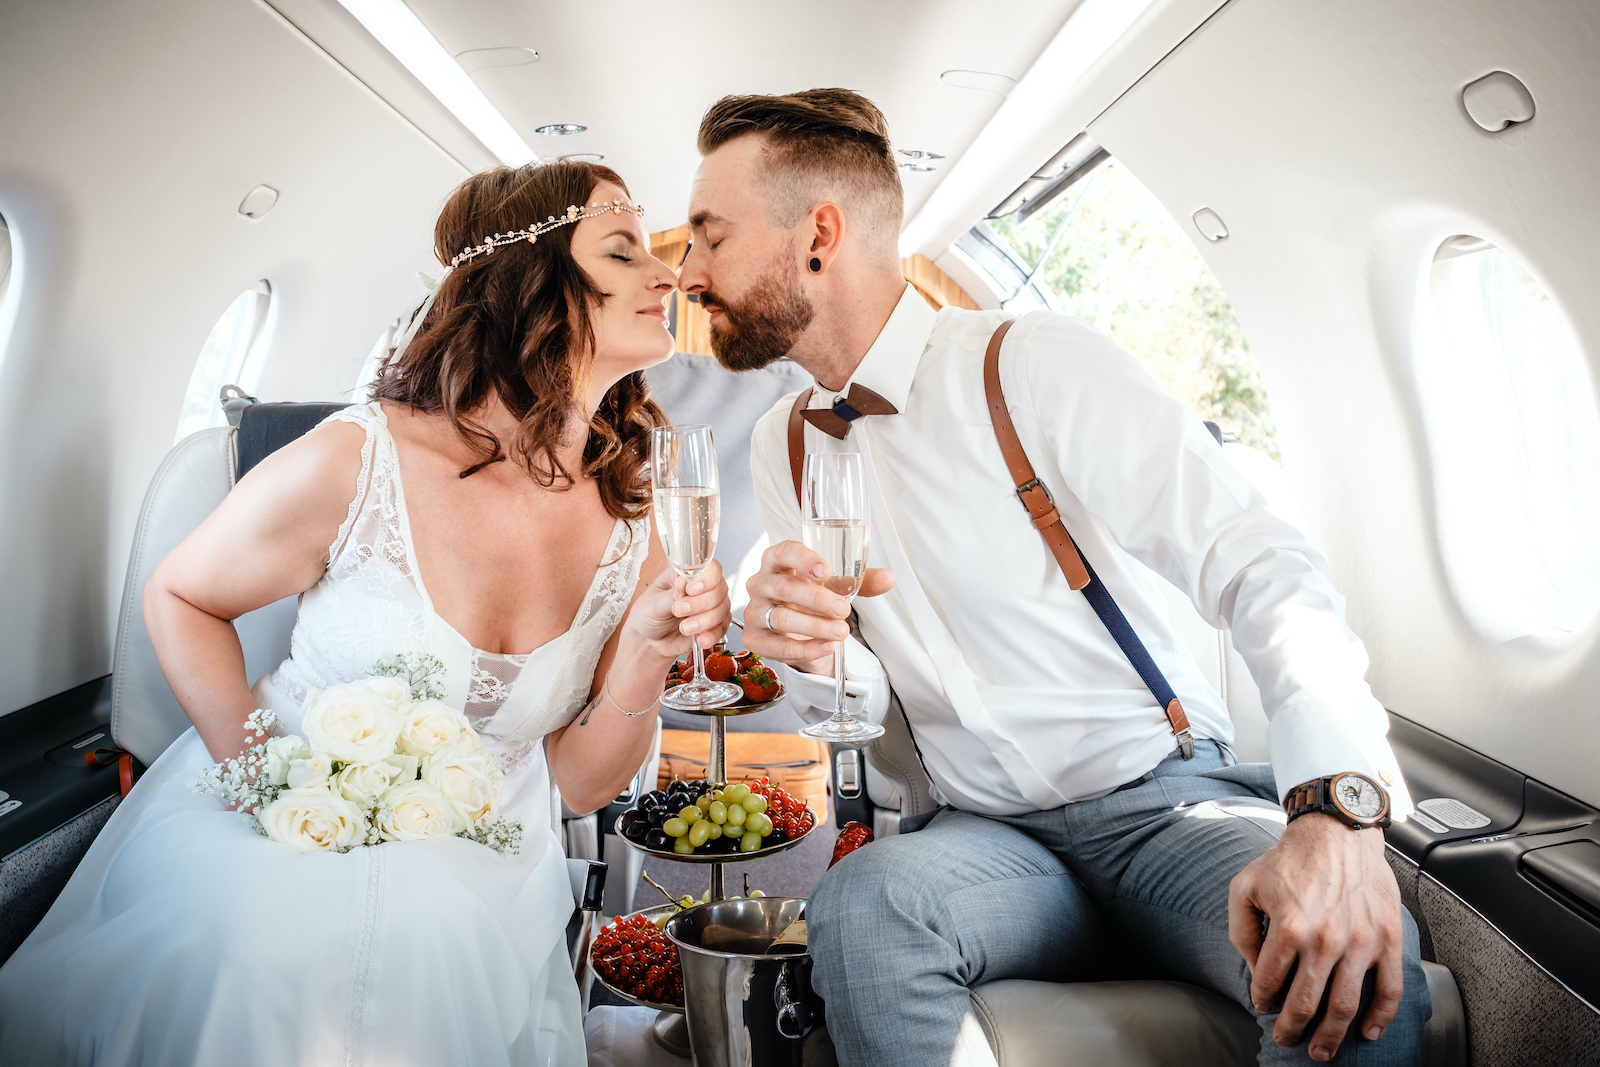 tourameo-trip-planning-travel-wedding-couple-in-flight